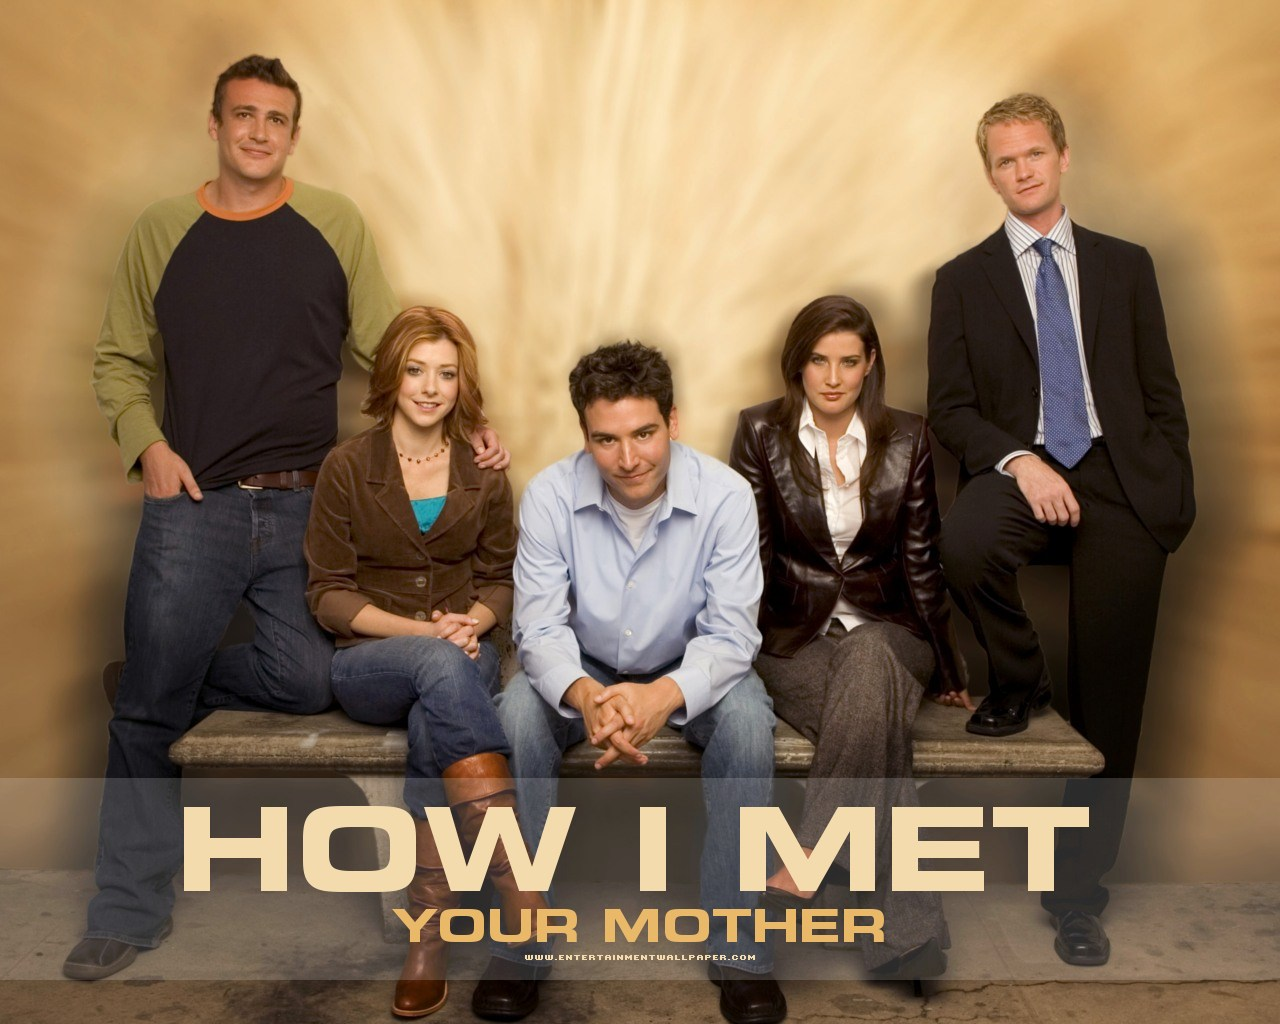 A Misleading Promo Shot for HIMYM